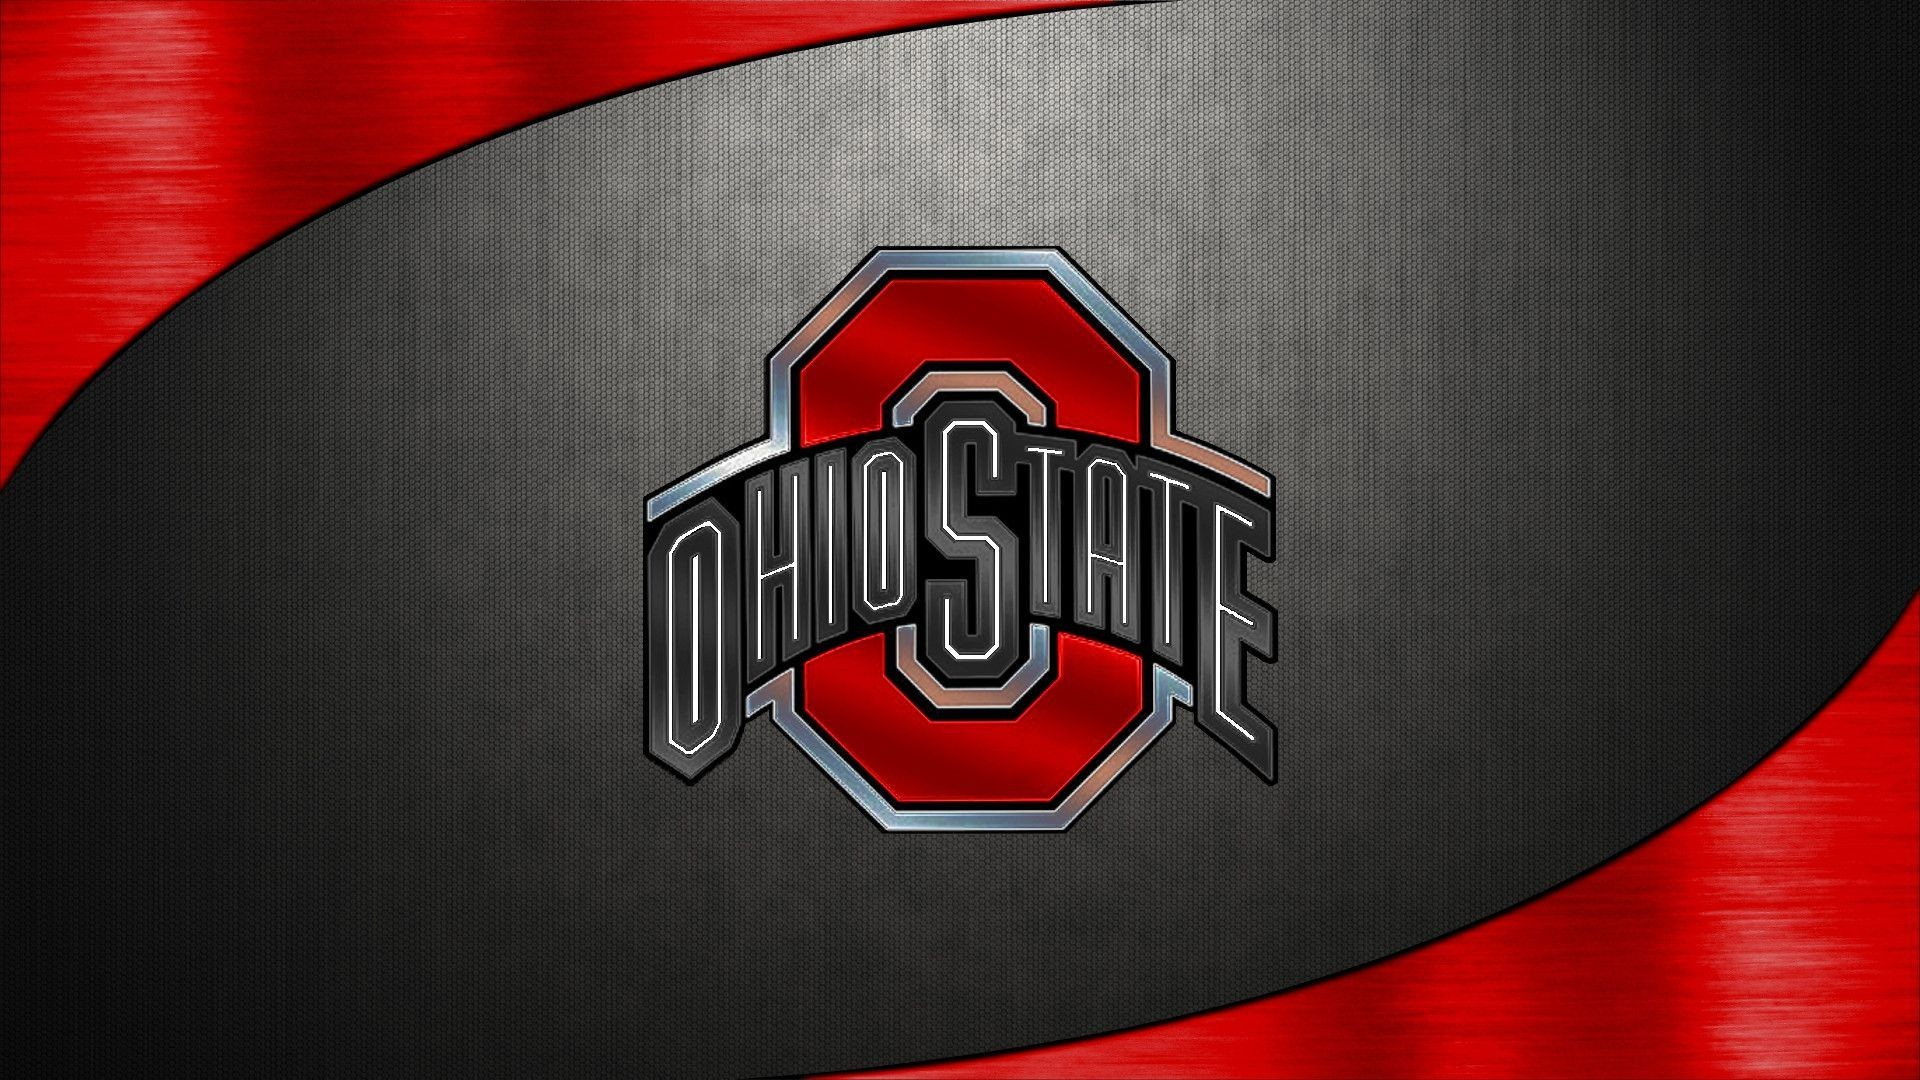 Ohio State Buckeyes Wallpaper Hd 86 Images